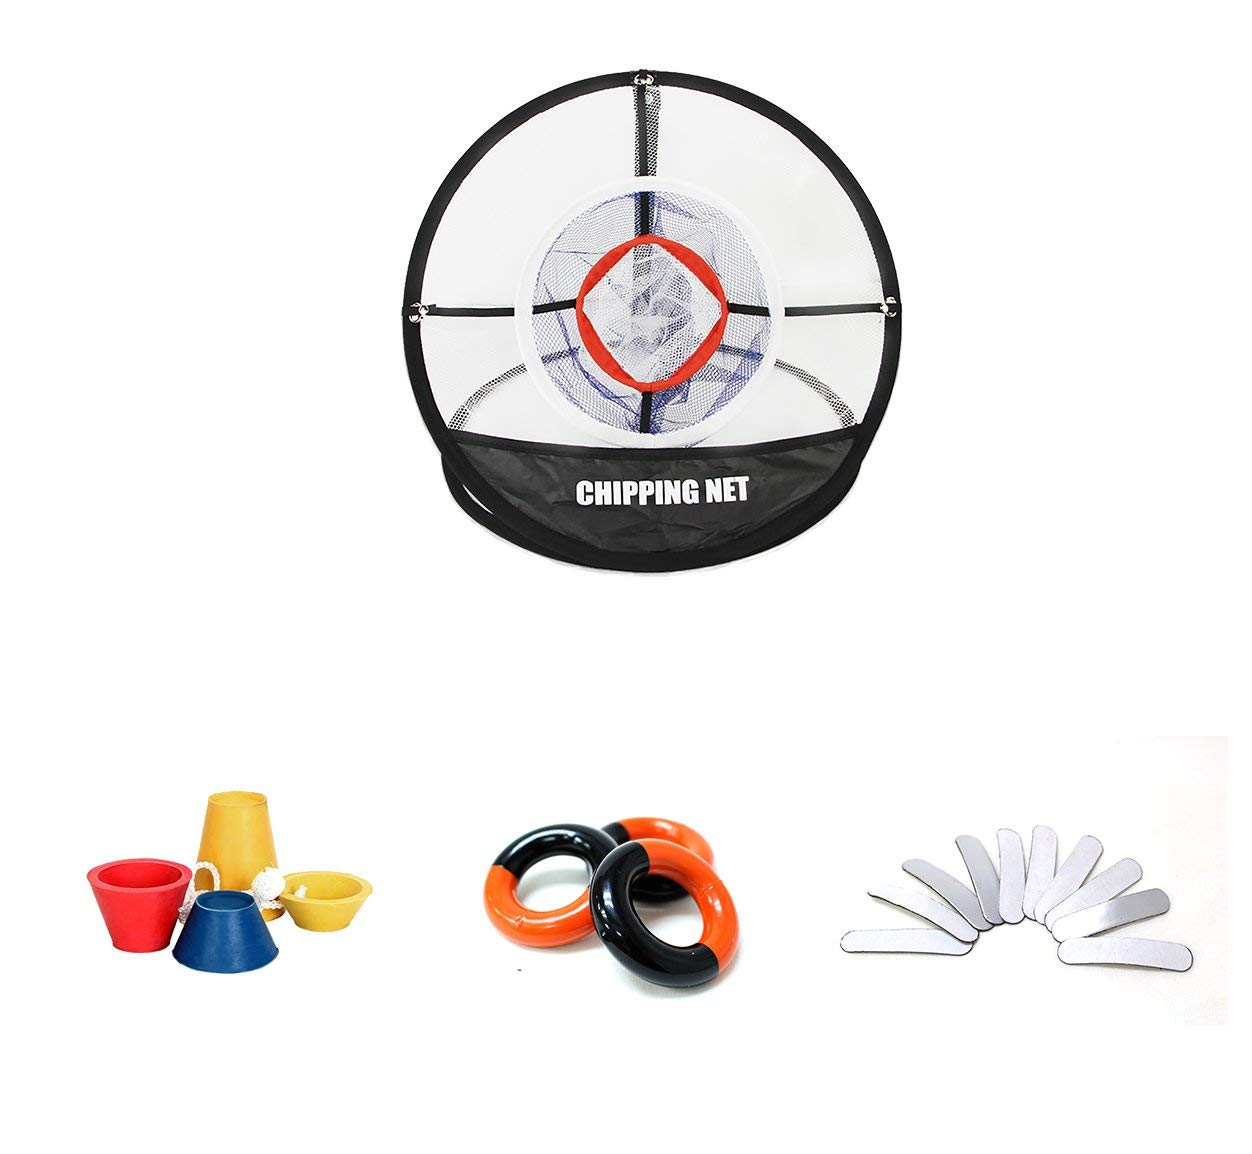 POSMA CN010H Portable Golf Training Chipping Net set with Hitting Aid Practice In/Outdoor Bag Hitting Nets+Weight Power Swing Ring Red and Black+Lead Weight Tapes for Golf Clubs Warm Up+Winter Tee